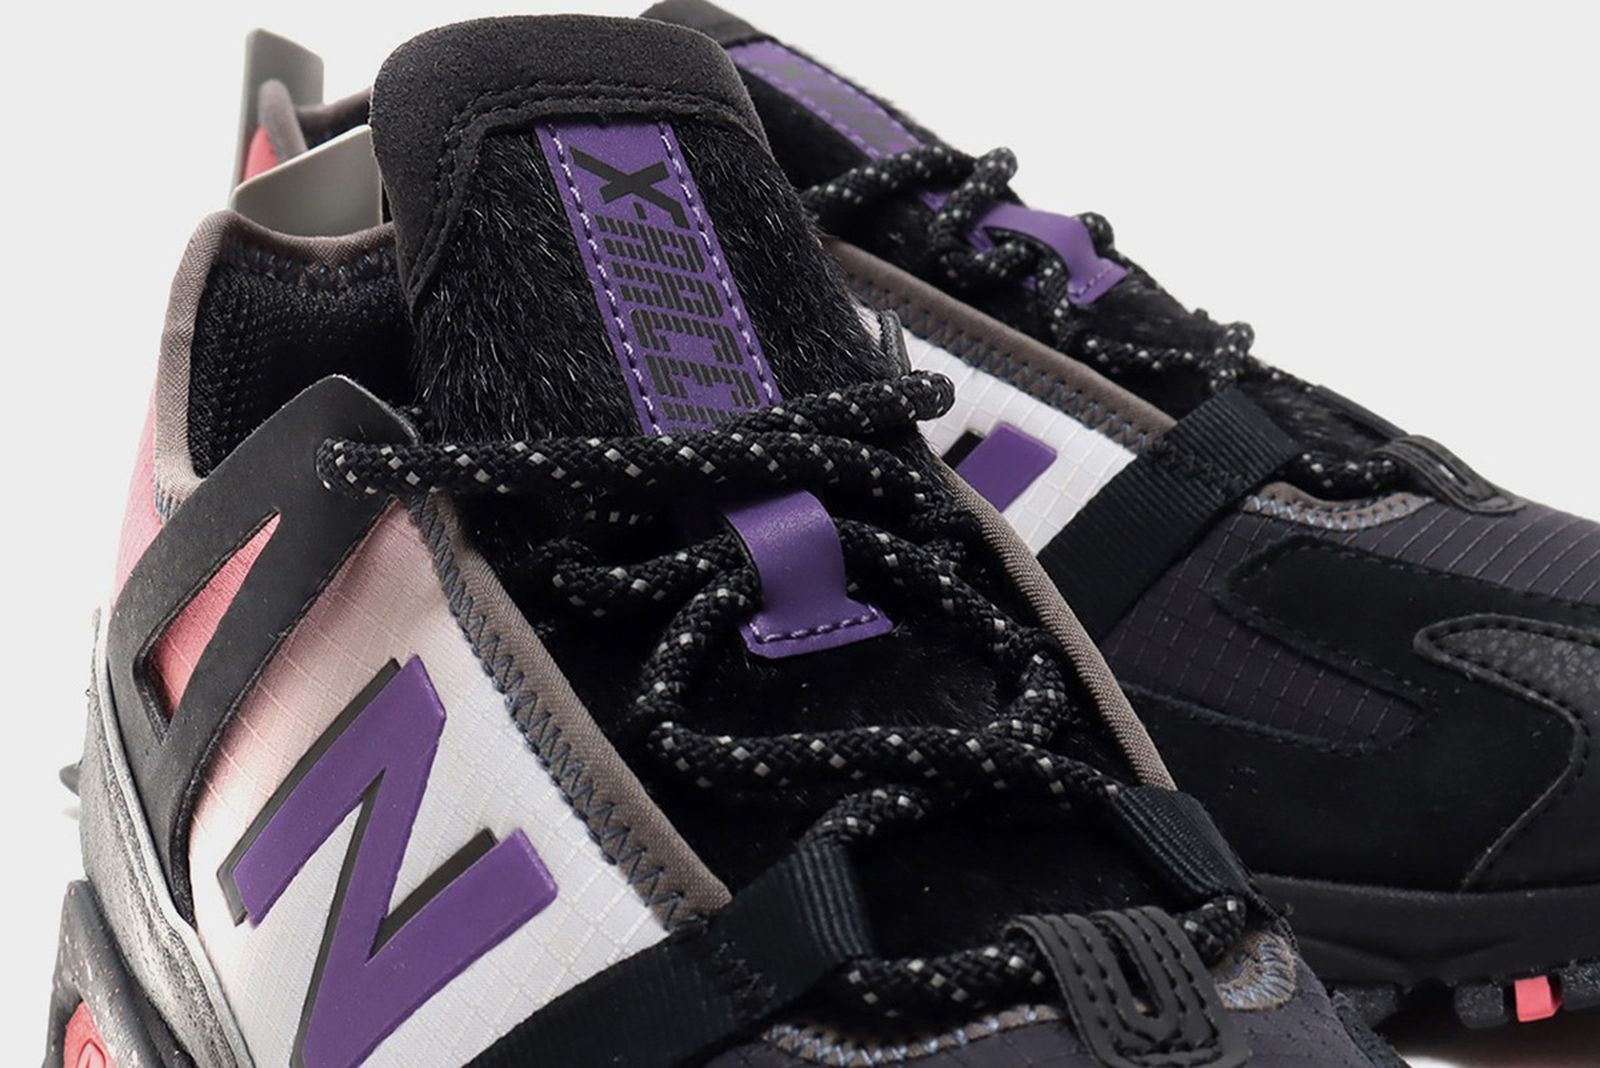 atmos-staple-new-balance-x-racer-utility-release-date-price-06